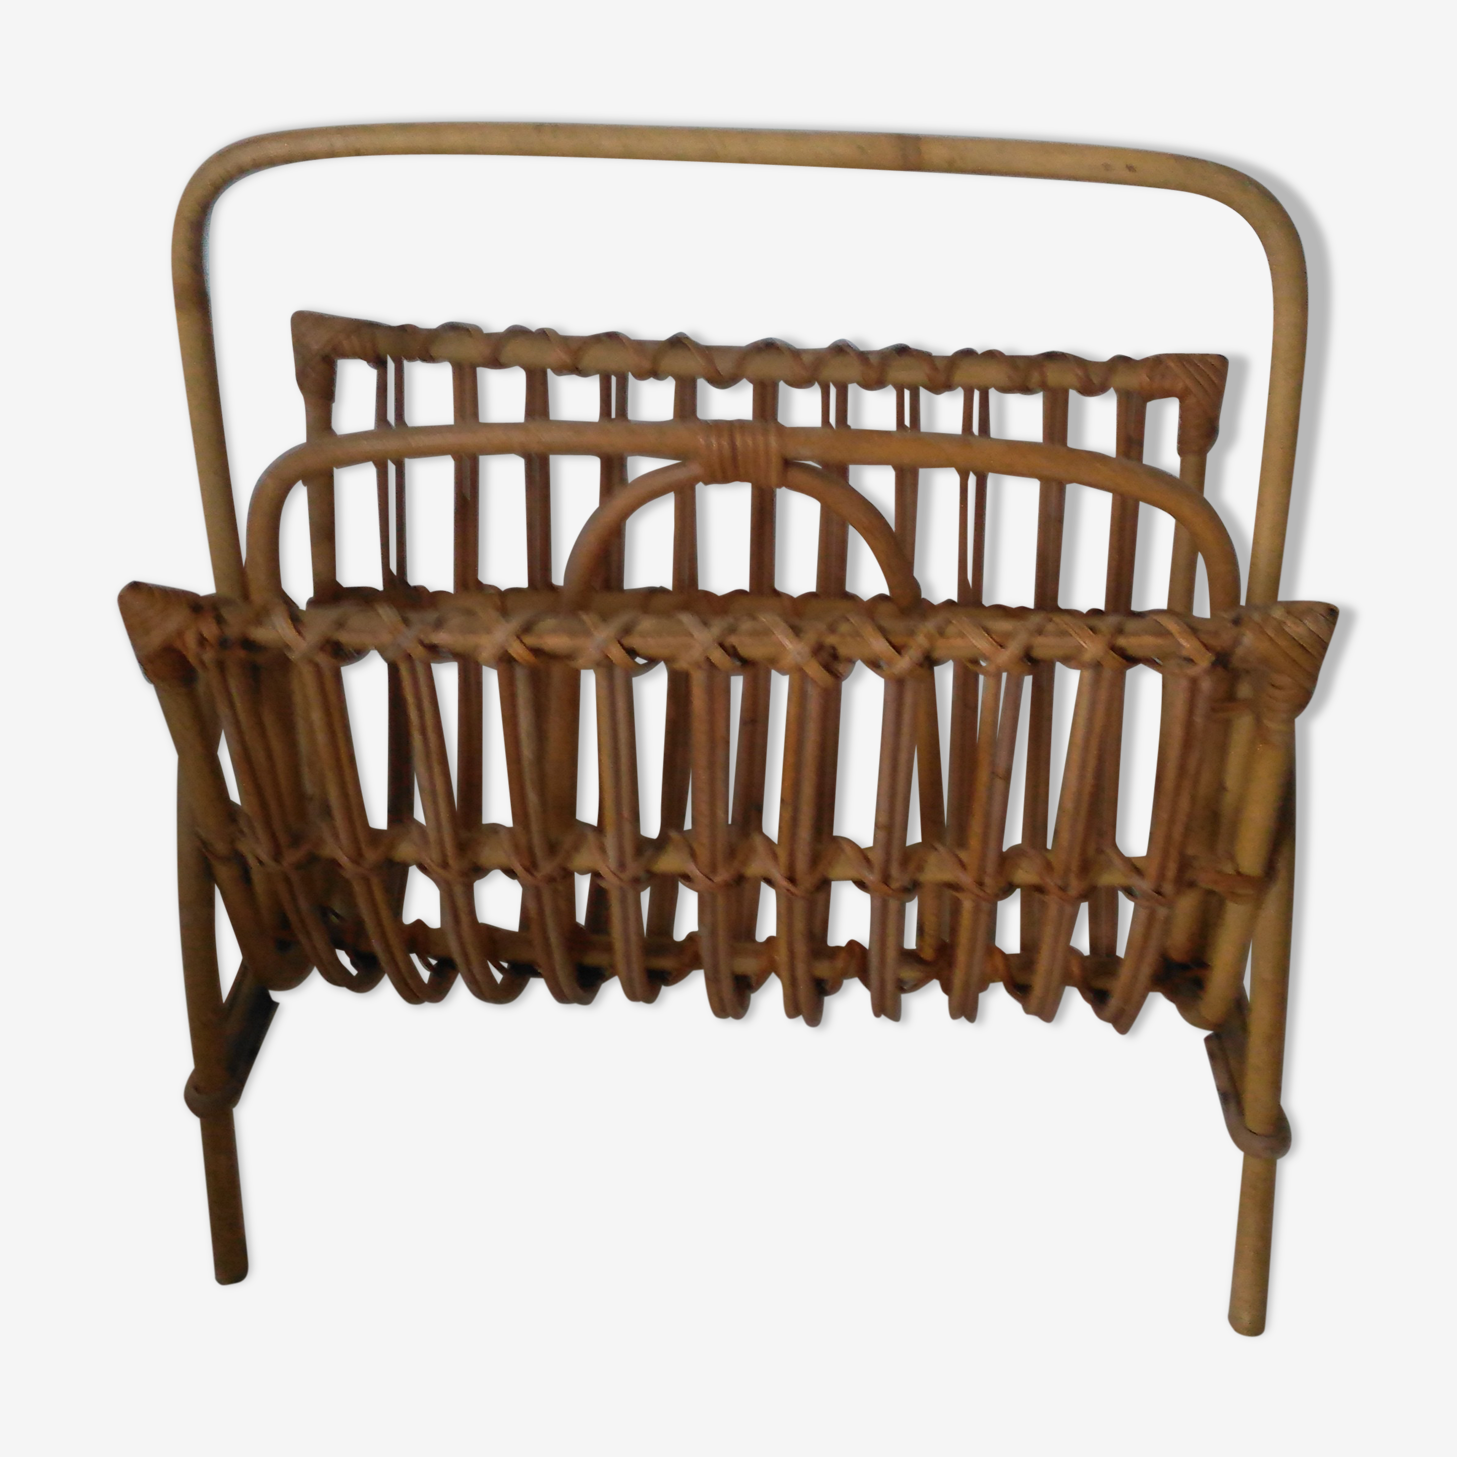 Vintage wicker magazine rack